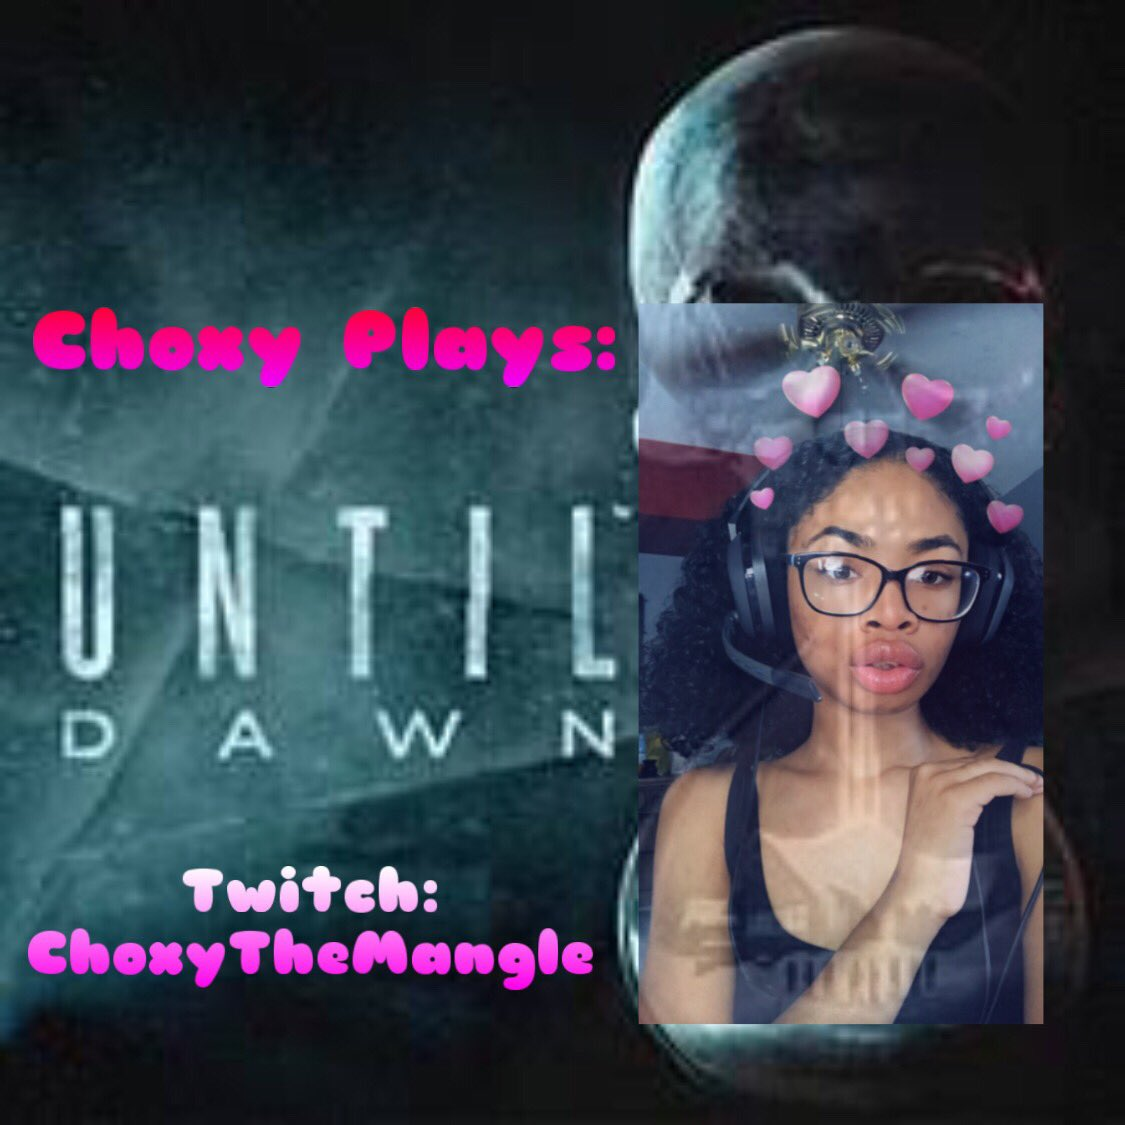 Tune in! Starting in 20!!  #YouTube #Youtuber #Twitch #twitchstreamer #twitchtv #TwitchAffiliate #GirlGamer #GamerGirl #Gaming #Games #VideoGames #Playstation4 #Playstation #PS4 #playstationnetwork #UntilDawn